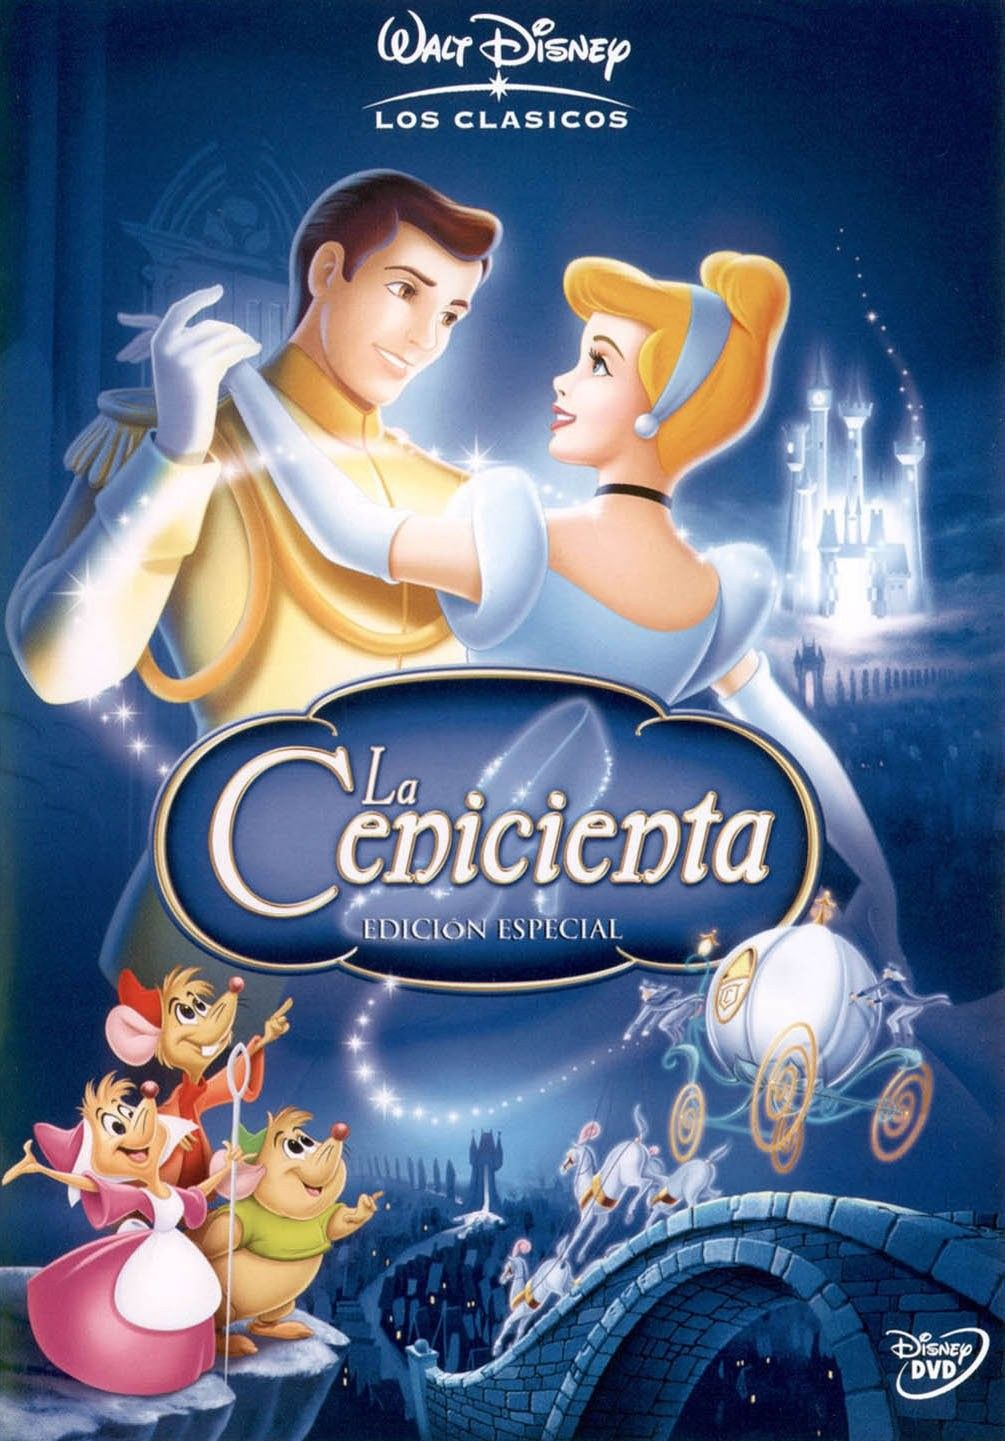 Ver La Cenicienta Online Gratis 1950 Hd Pelicula Completa Espanol Cinderella Movie Cinderella Full Movie Walt Disney Cinderella